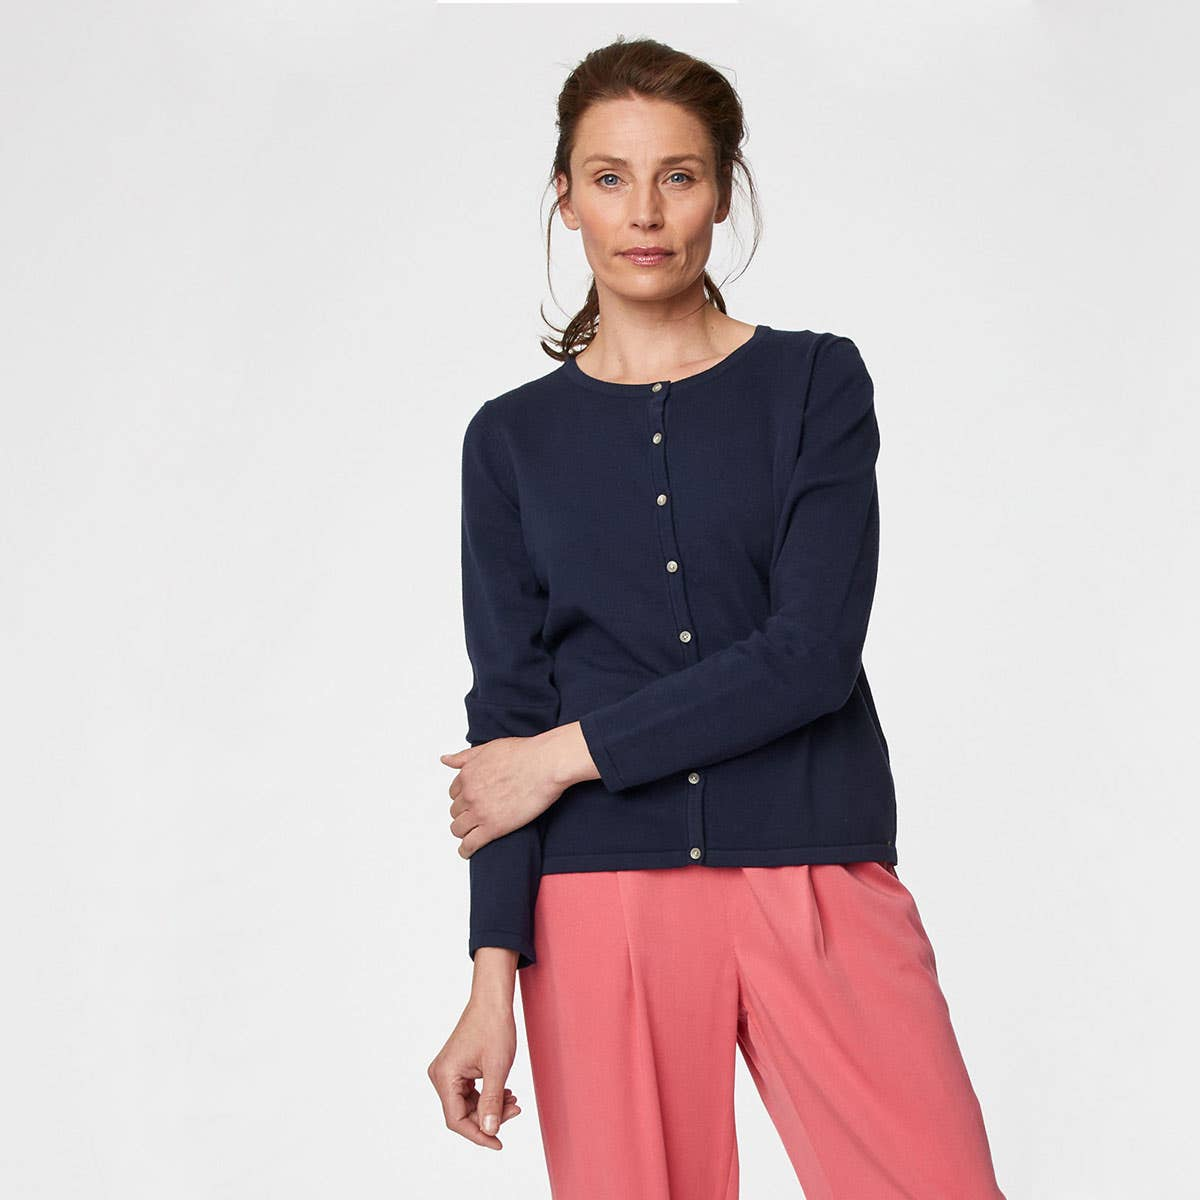 Thought Organic Cotton Navy Bodil Cardigan Size 10